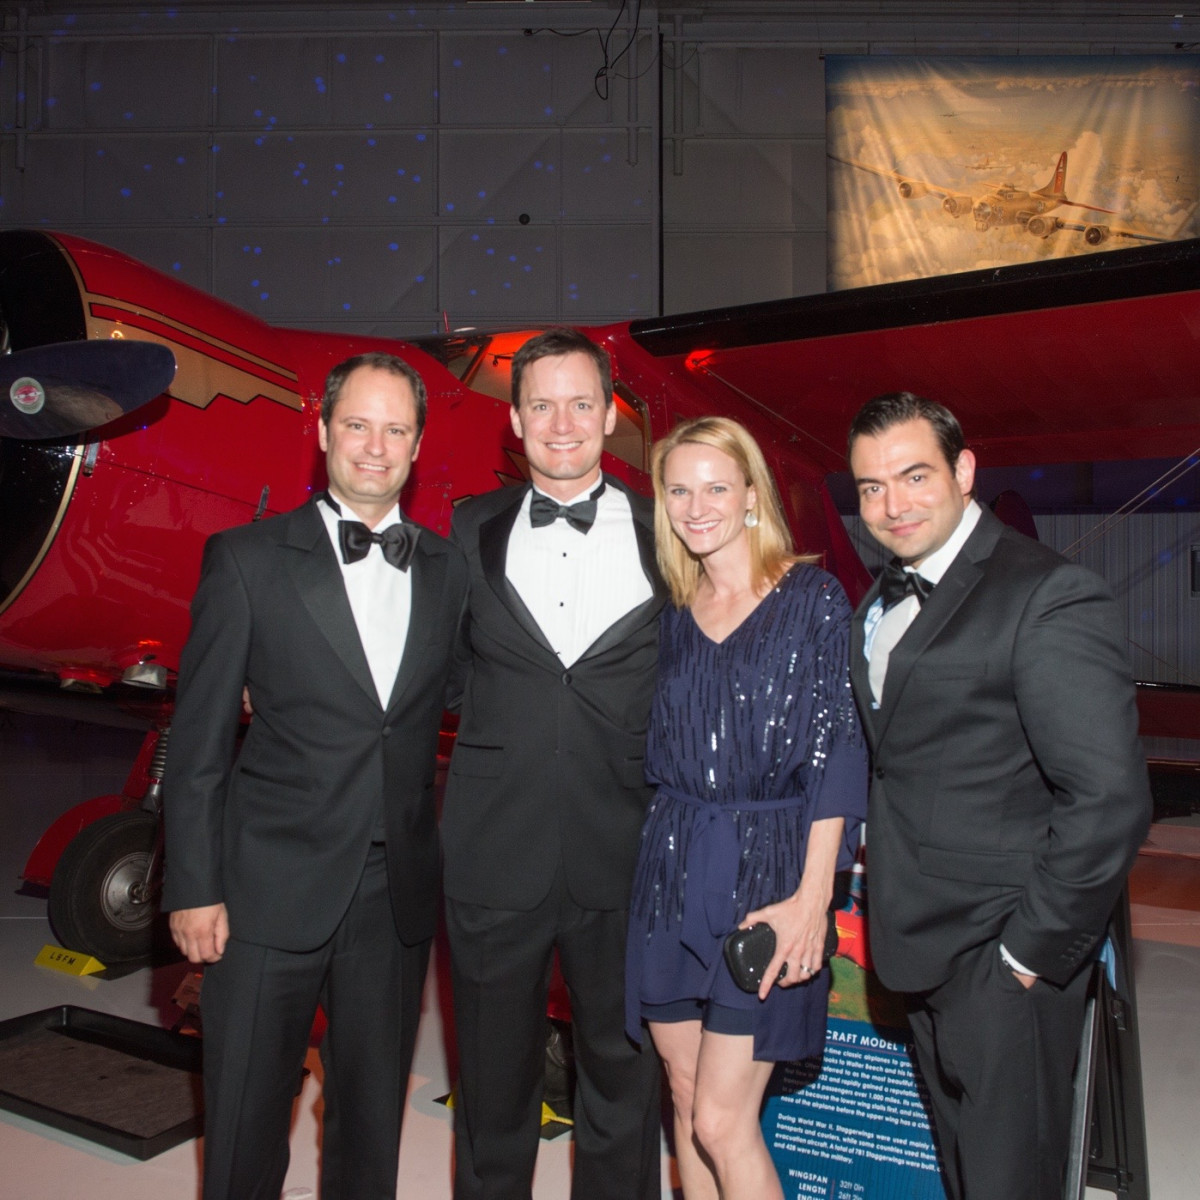 Lone Star Flight Museum gala 5/16 Rene Largo, Patrick Garvey, Morgan Garvey, Mark Schaverien.